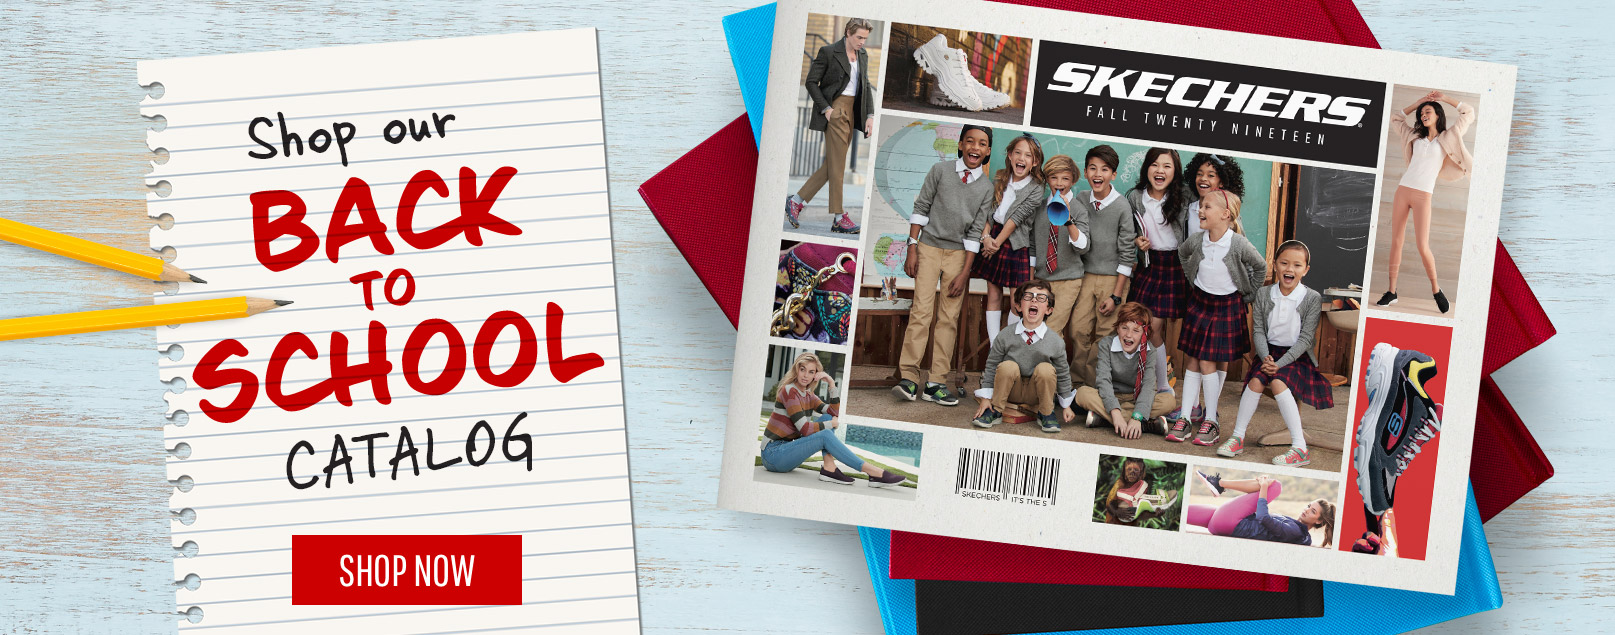 Make sure they're all cool when they go back to school with SKECHERS!  Shop our new Back to School catalog with the latest looks for boys, girls, men and women.